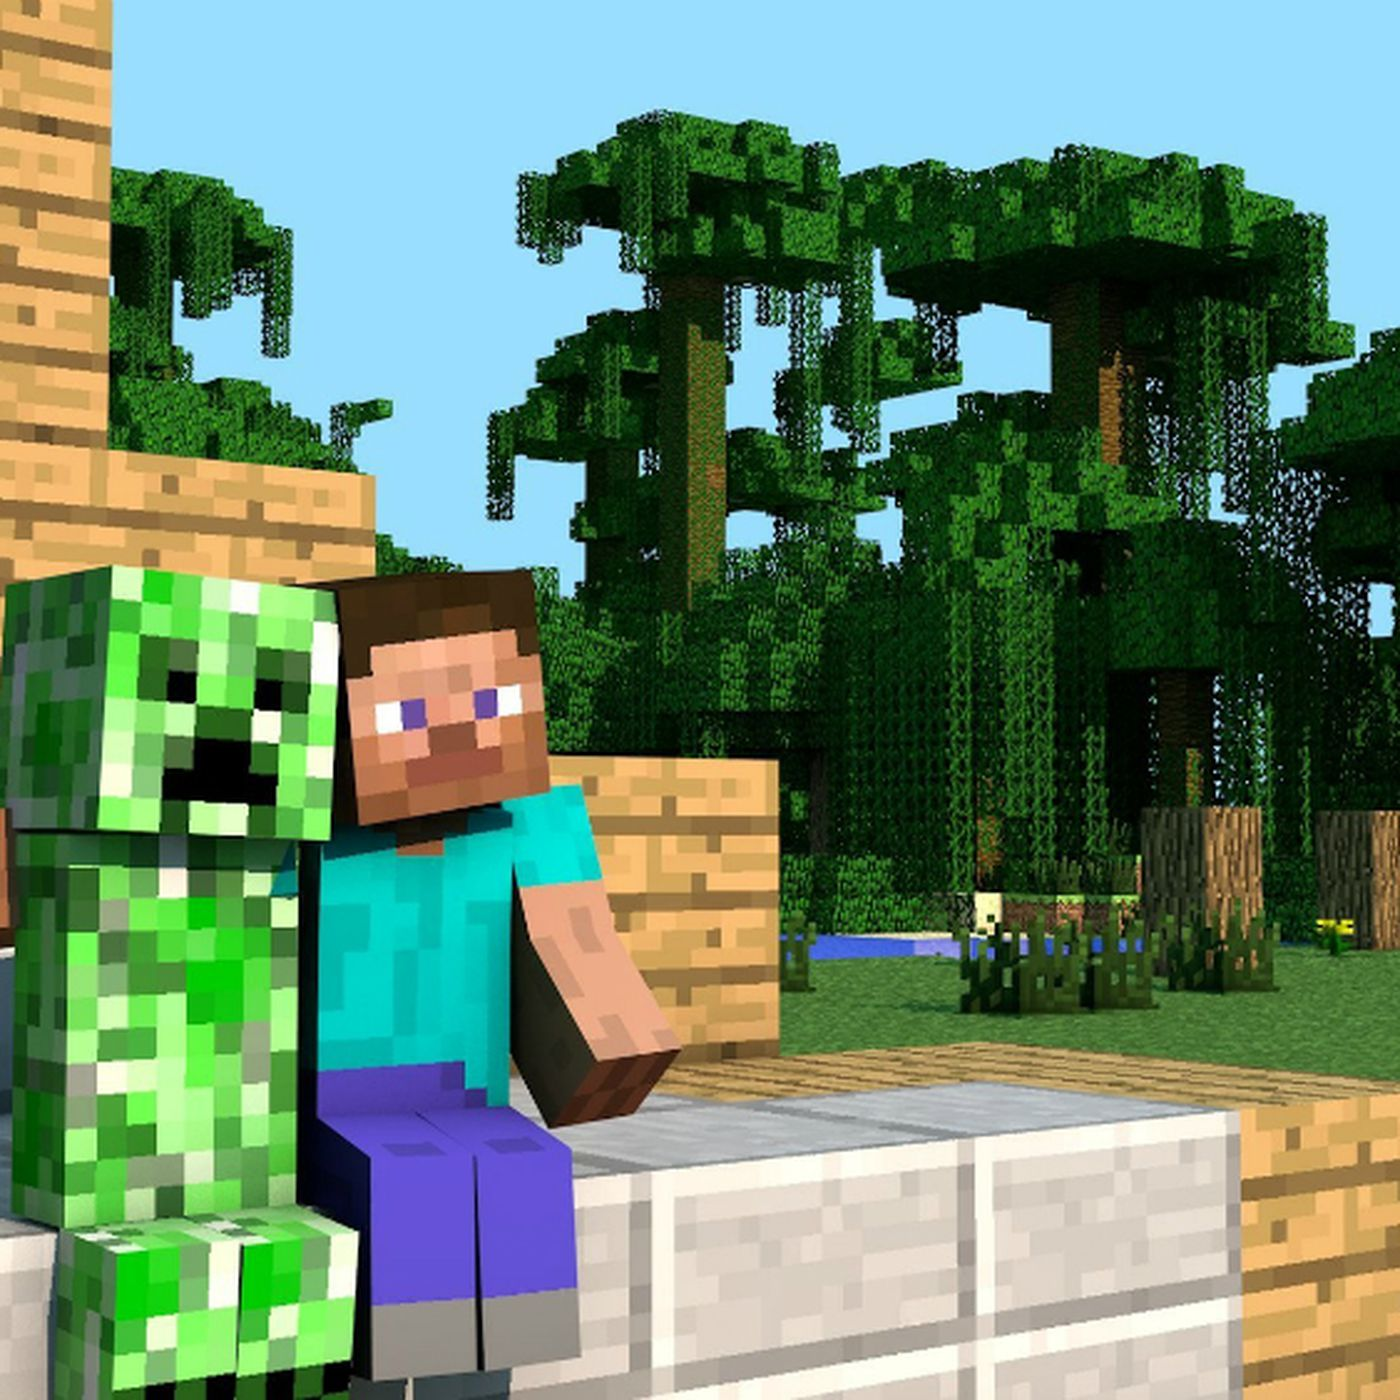 Minecraft: How to play with friends on other platforms using cross